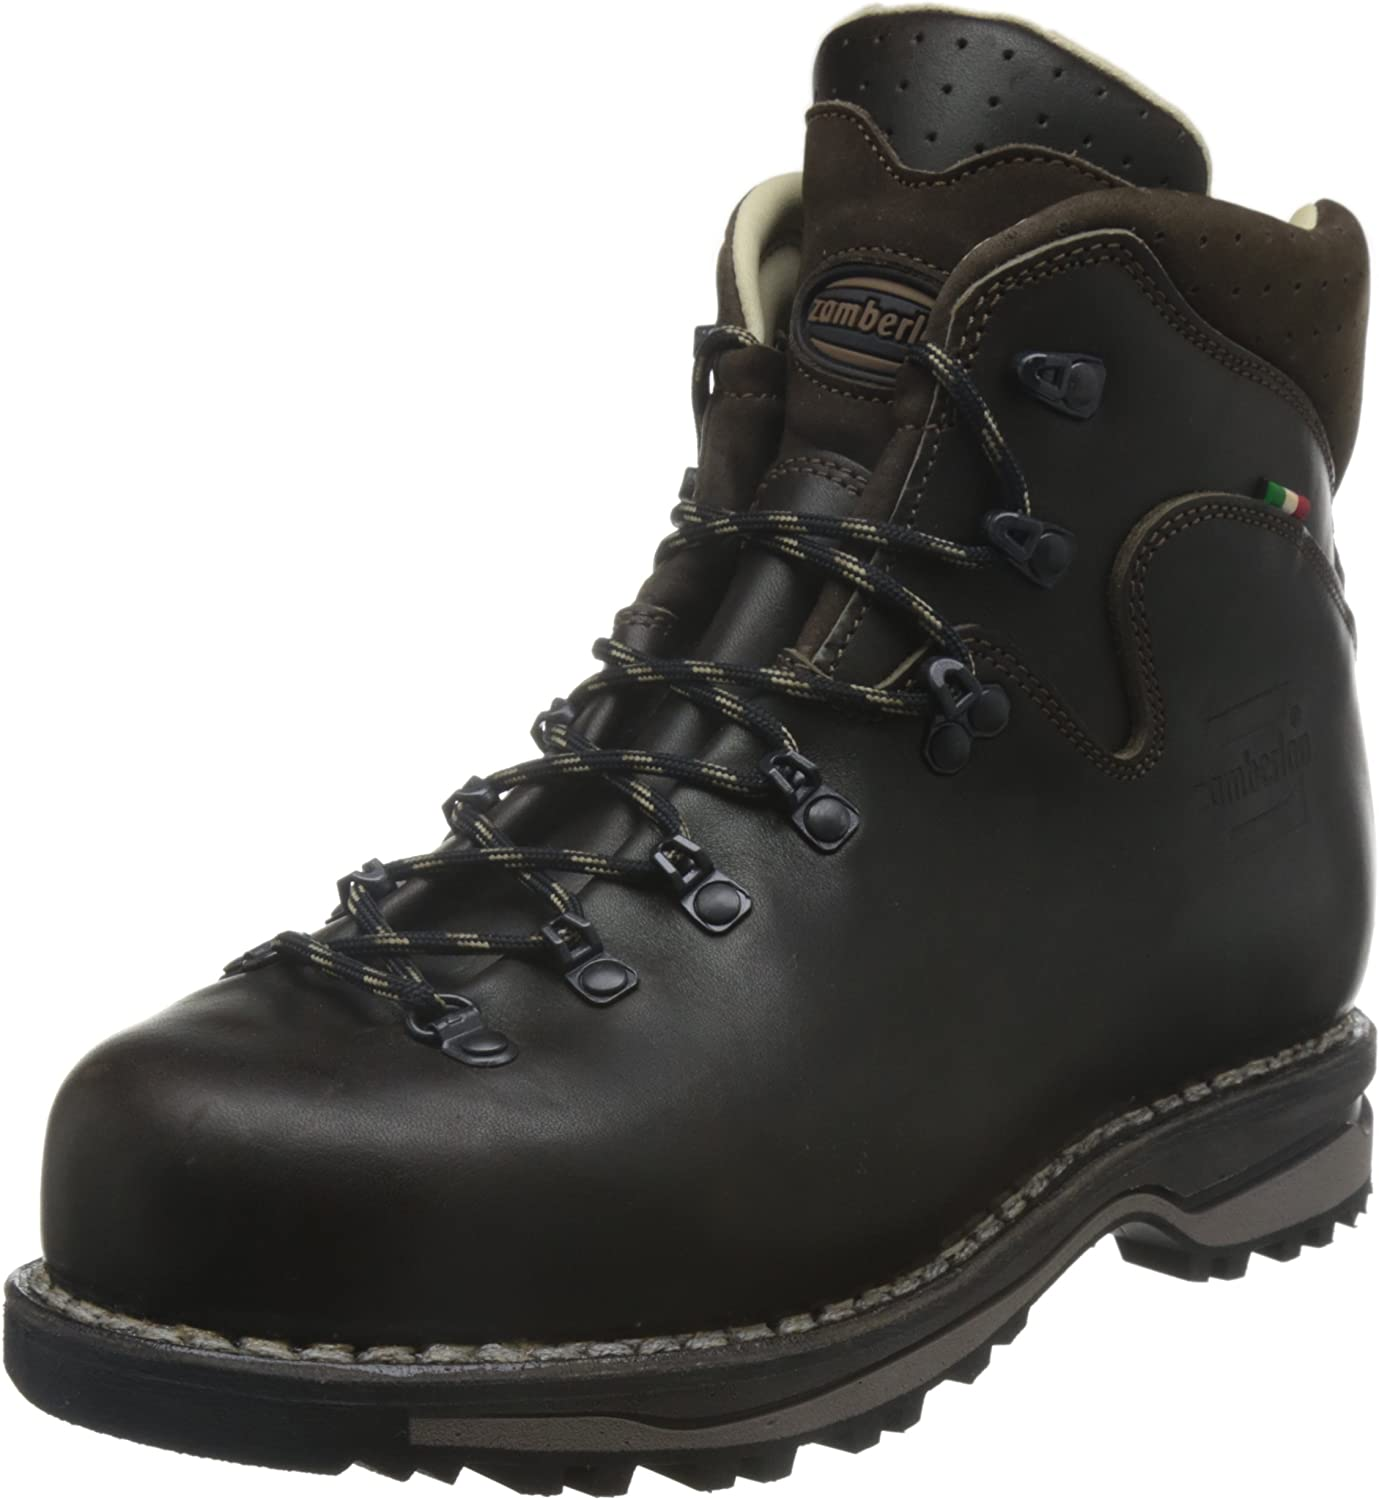 Zamberlan Men's 1023 Latemar NW RR Hiking Boot